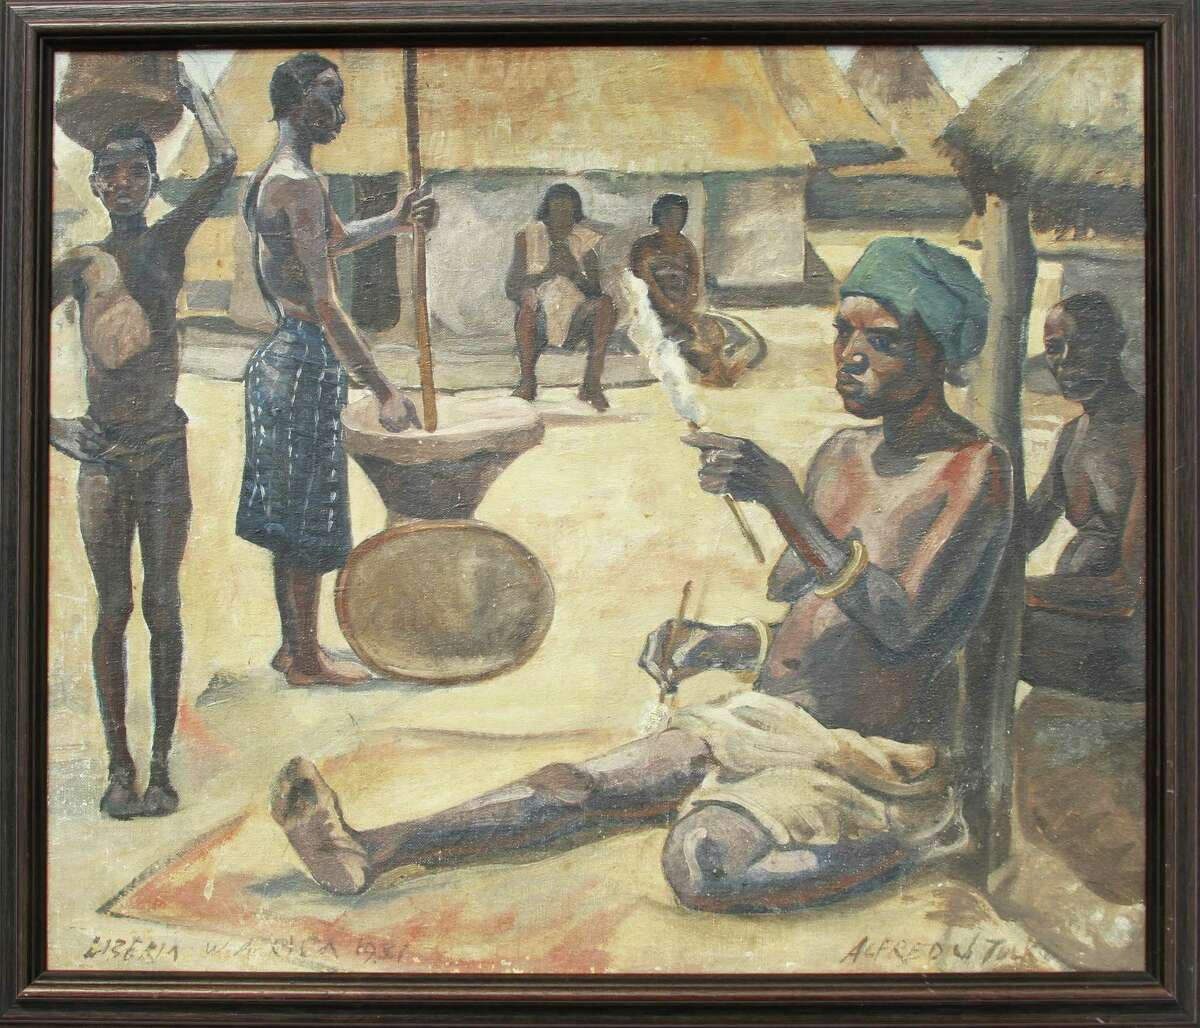 During his time in Liberia in West Africa during the early 1930s, Alfred J. Tulk, documented what he was experiencing through his art.